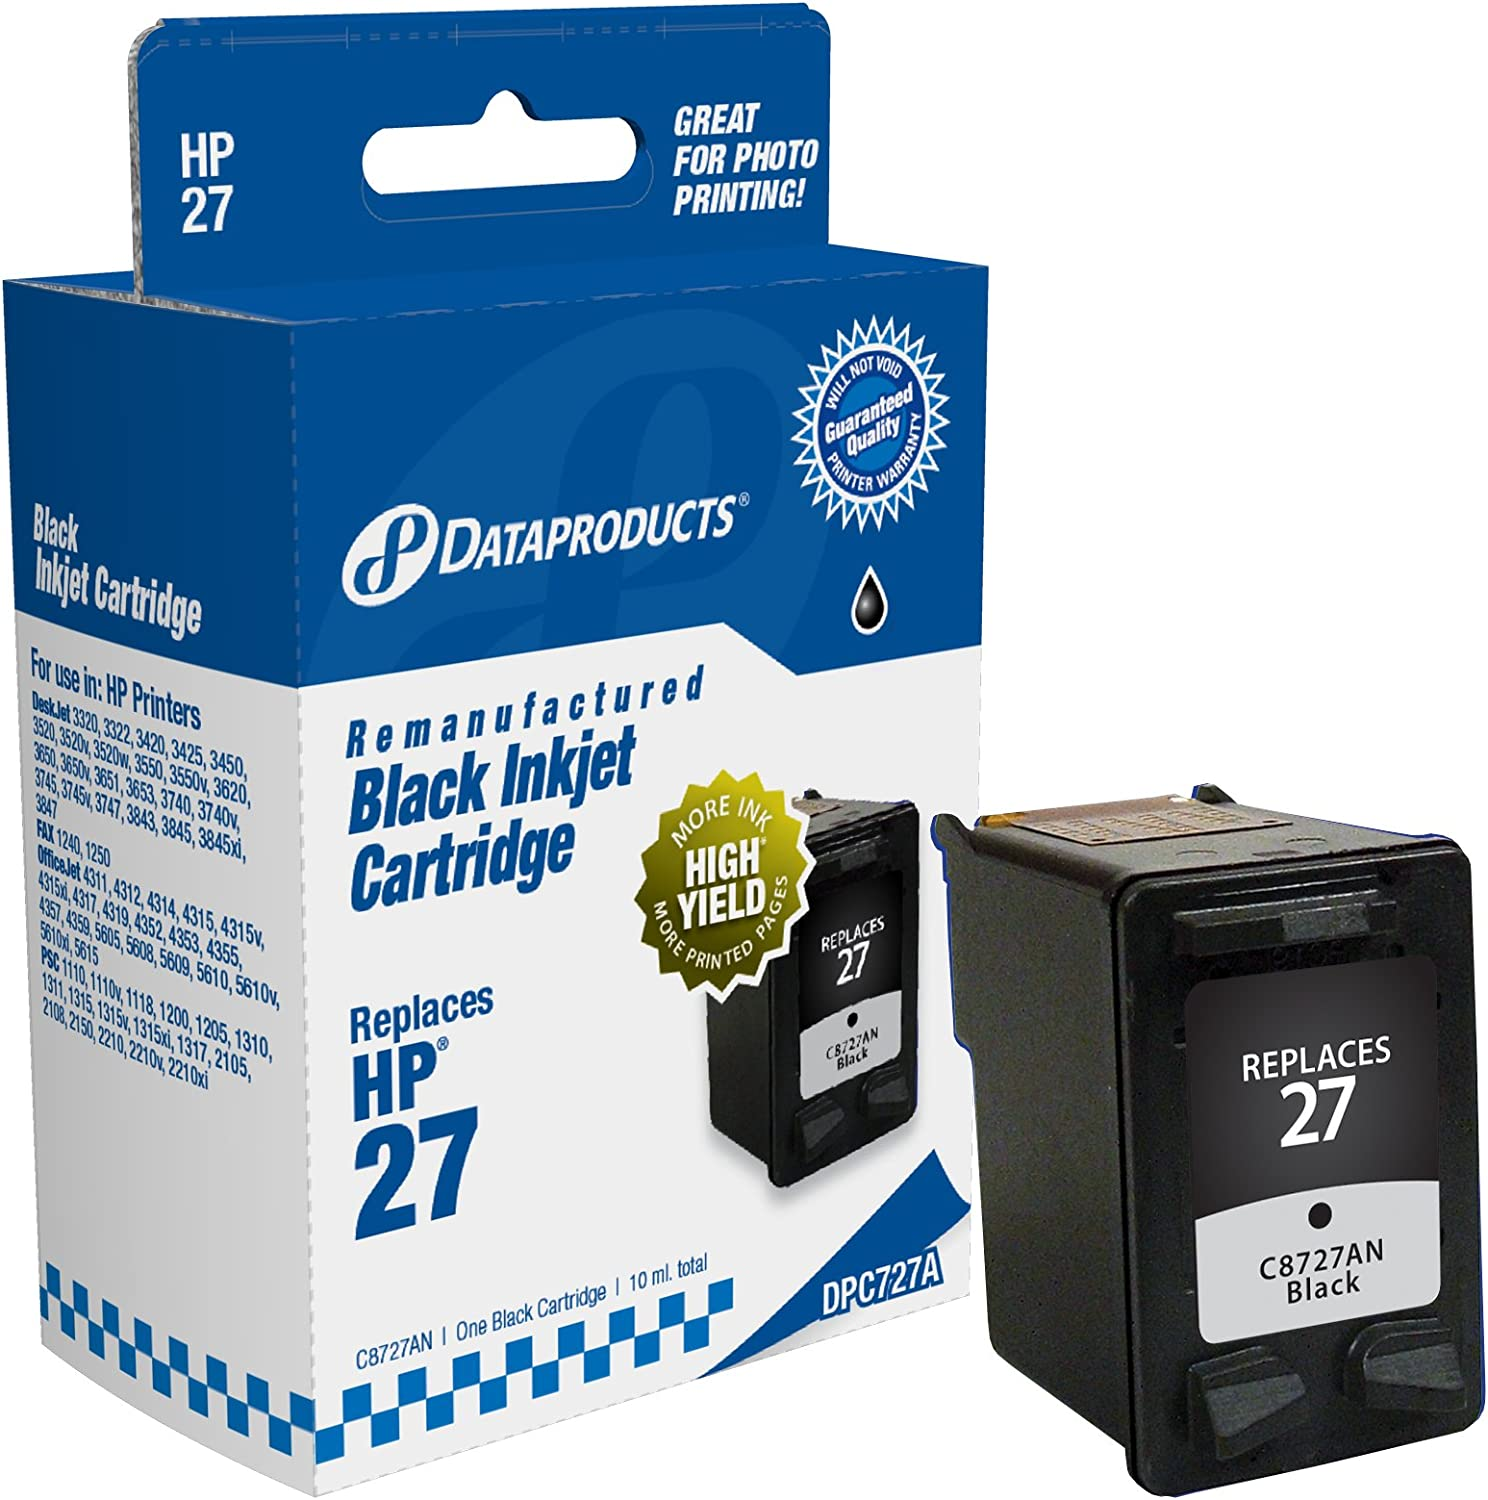 Dataproducts DPC727A Remanufactured Ink Cartridge Replacement for HP #27 (C8727AN) (Black)